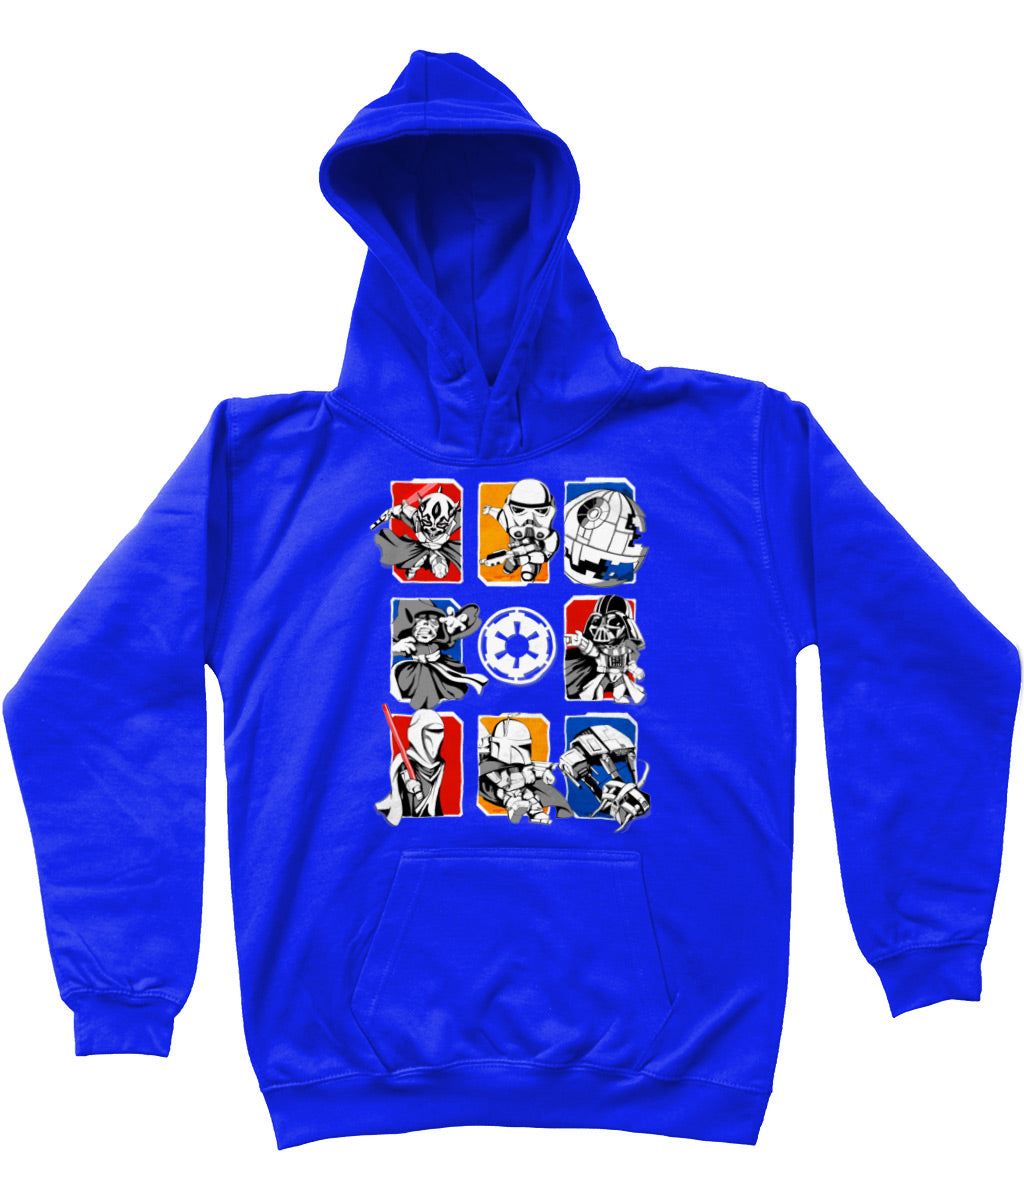 BSW Youth Girls Powerpuff Sith Lords Vader Sidious Maul Premium Hoodie